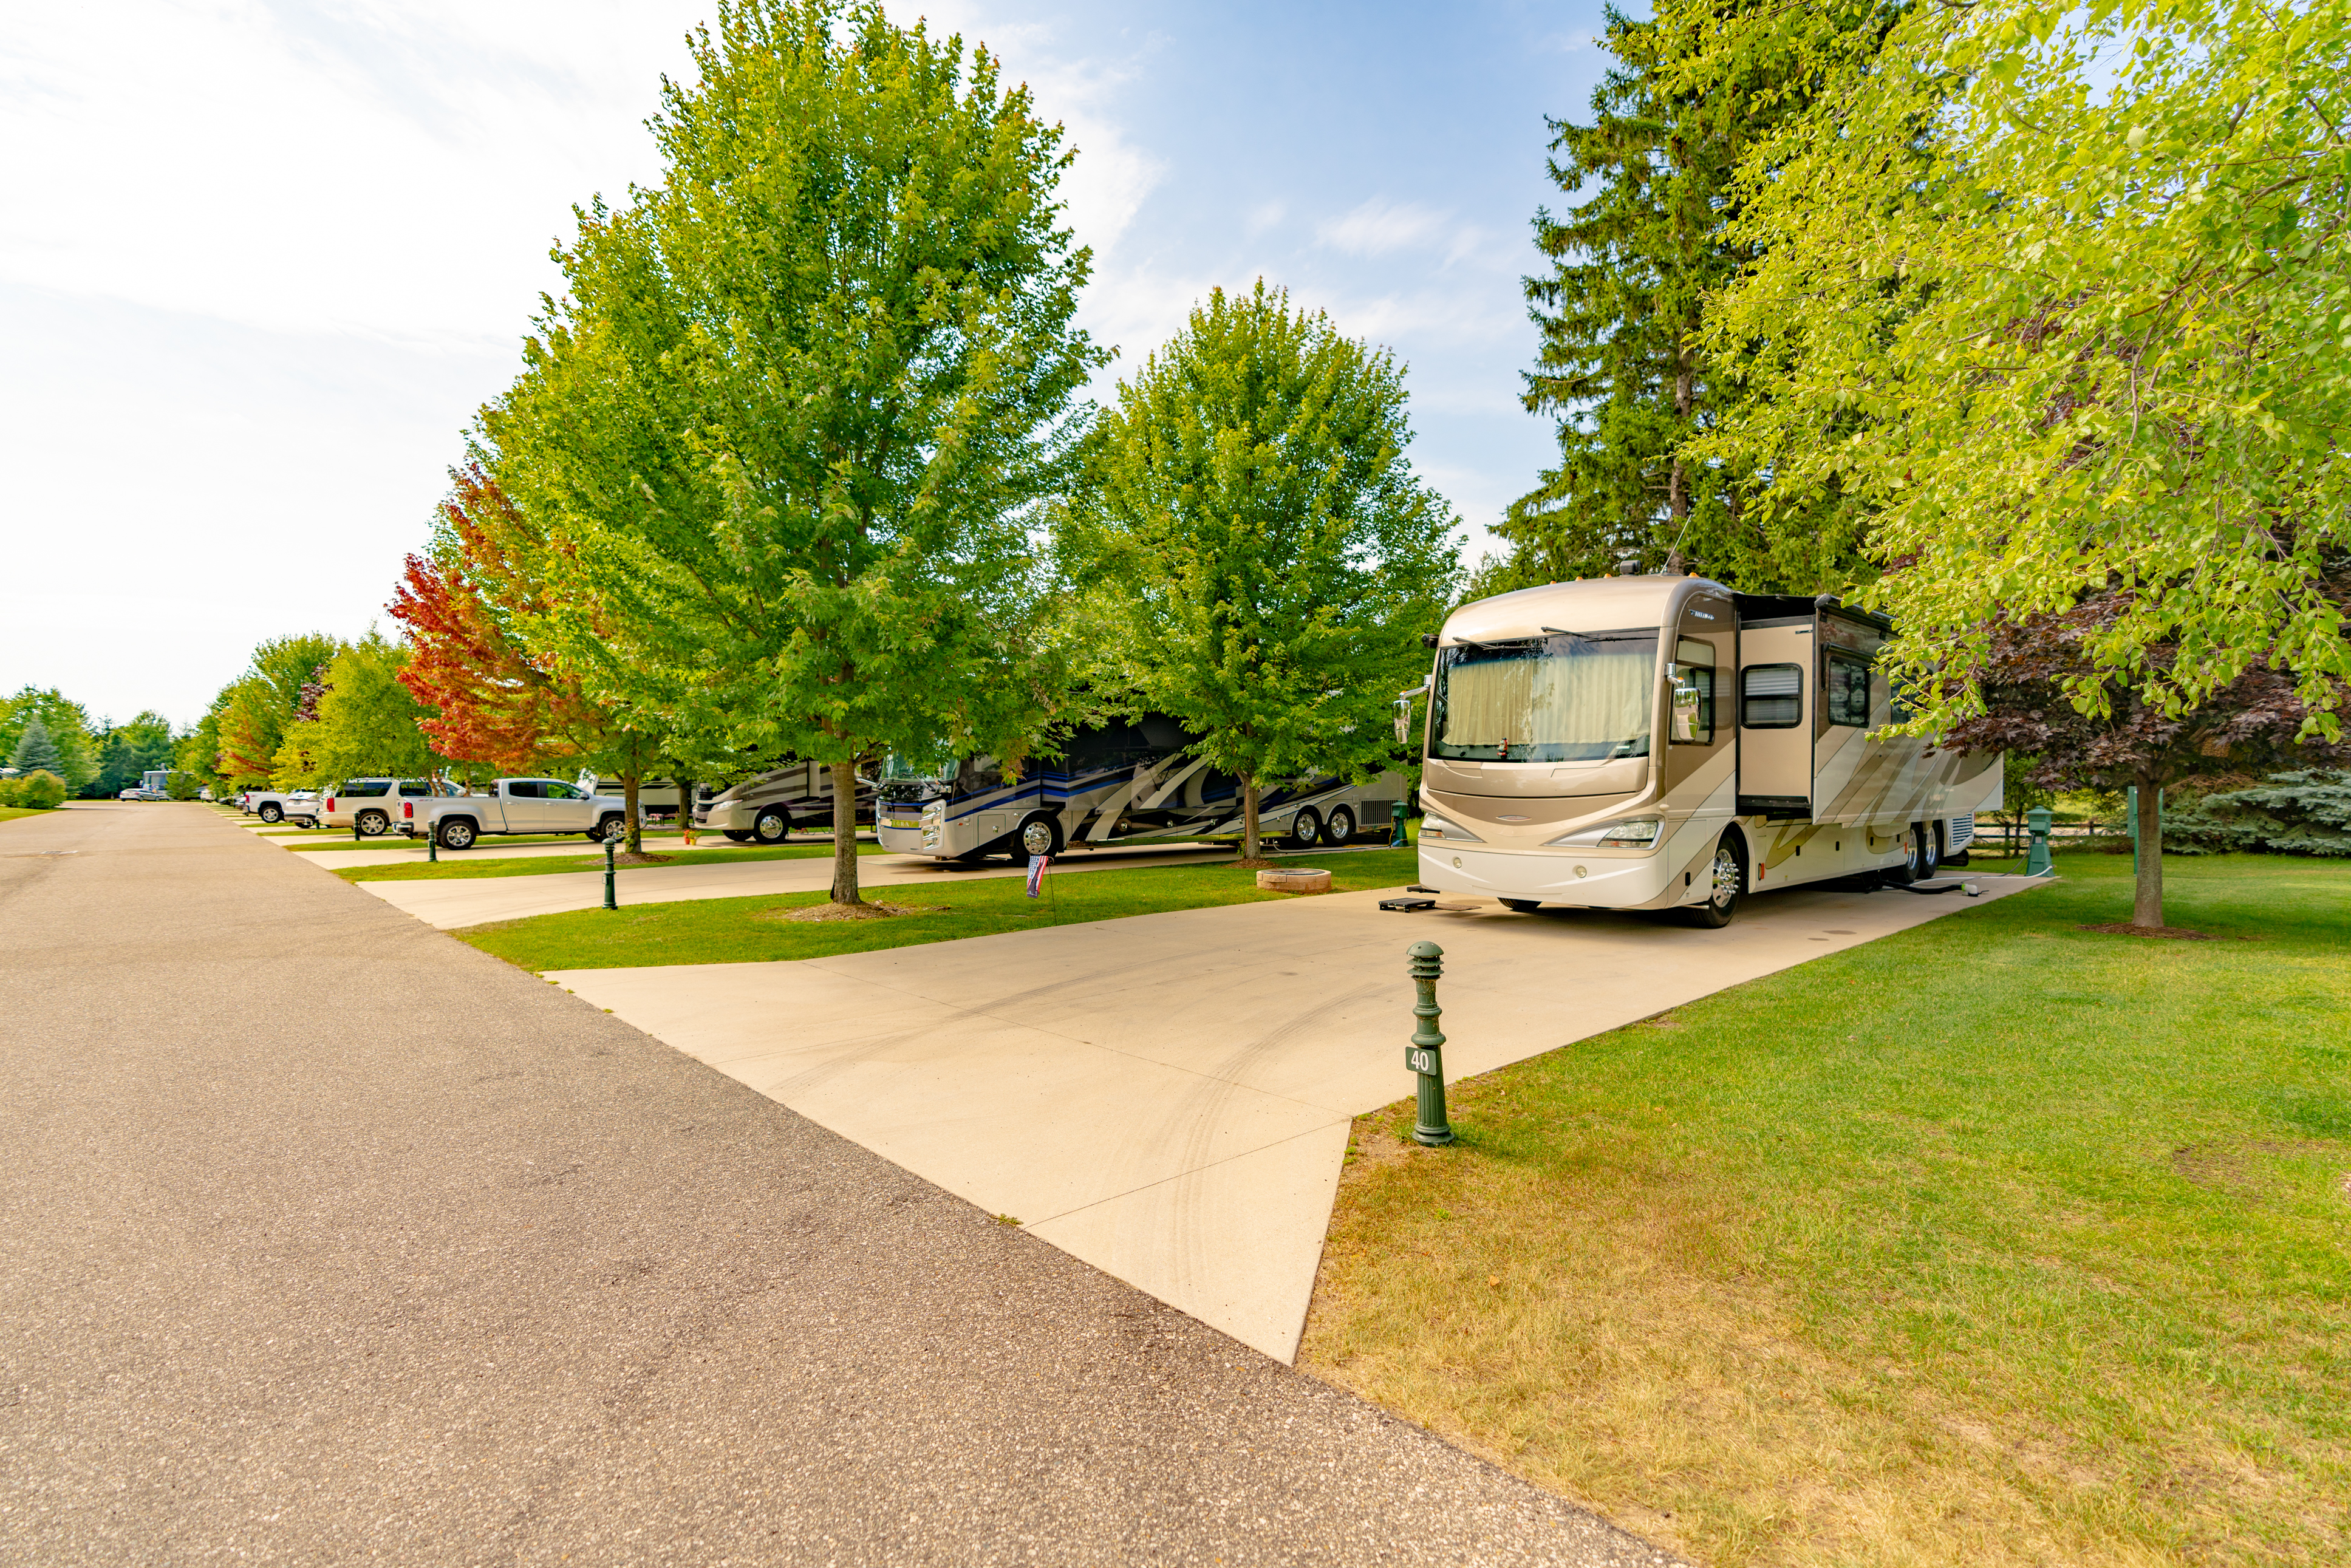 Large full hookup RV sites with concrete pads at Petoskey RV Resort in Petoskey, Michigan